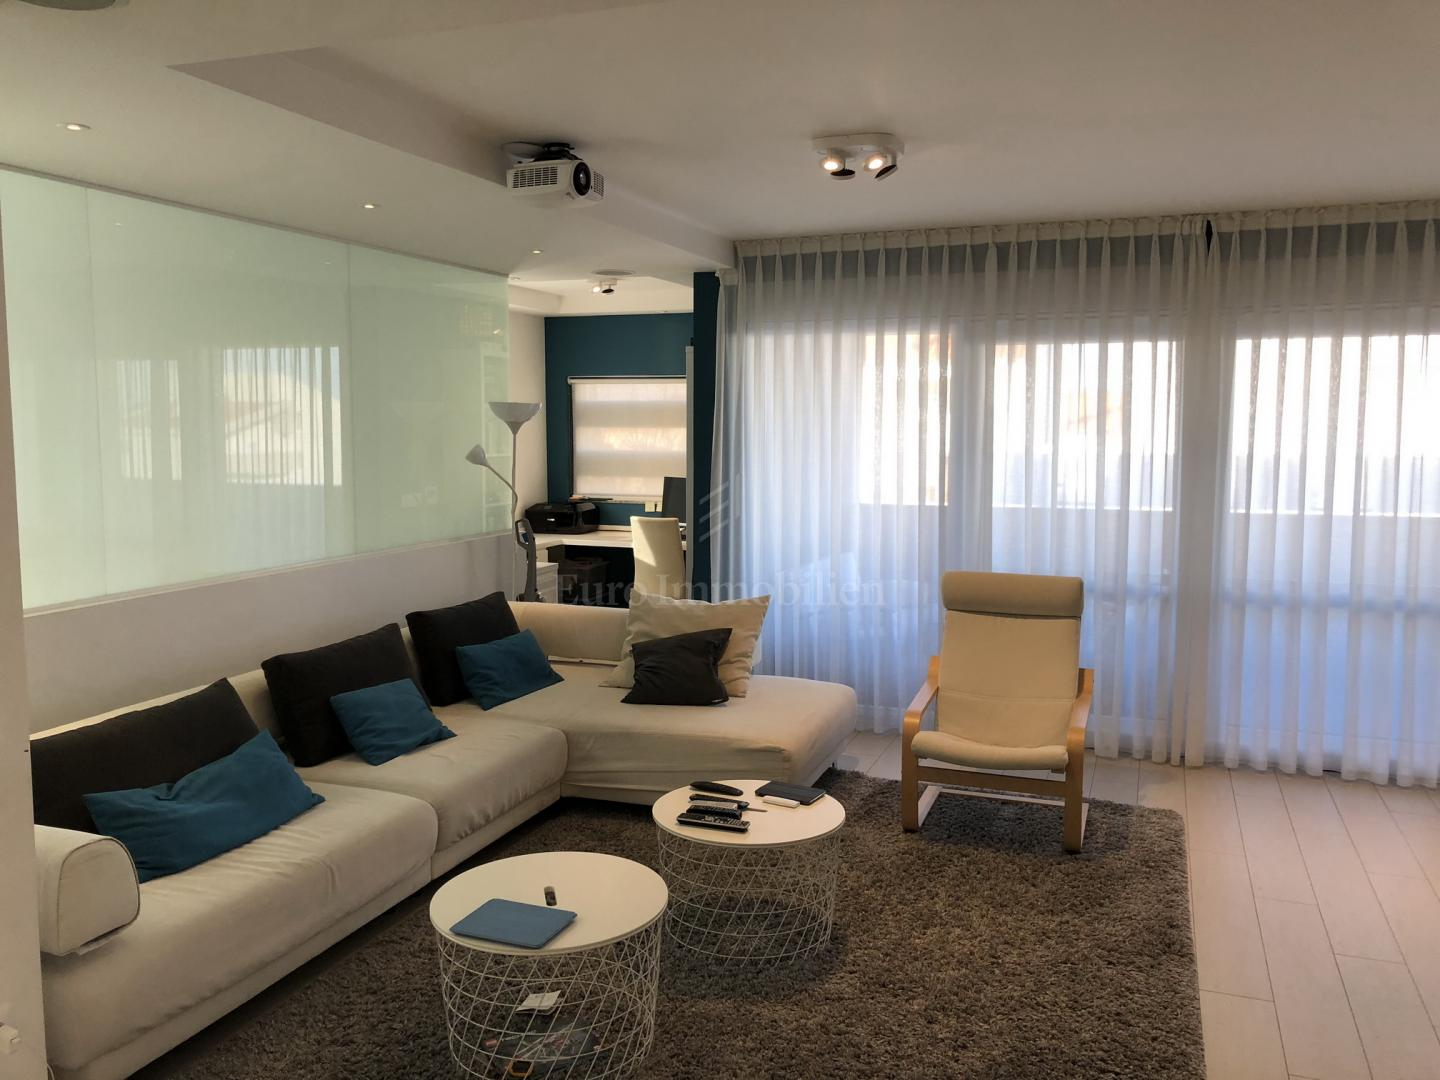 Fully equipped family house in Zadar